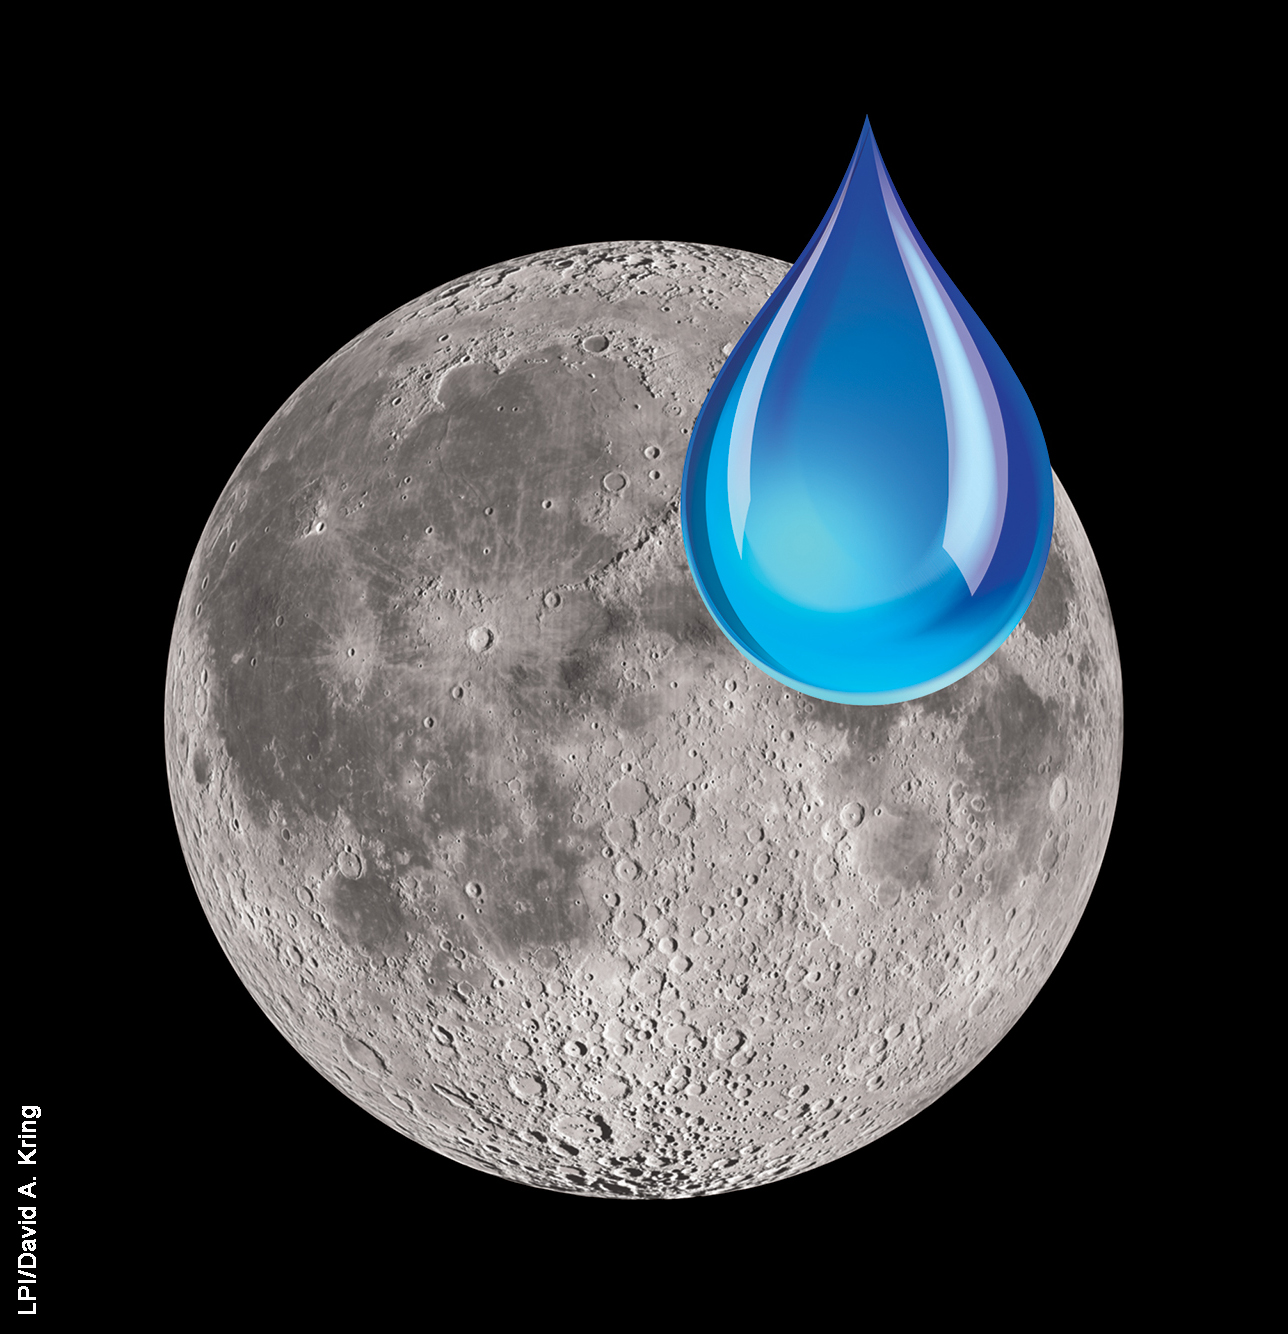 water on the moon - photo #20